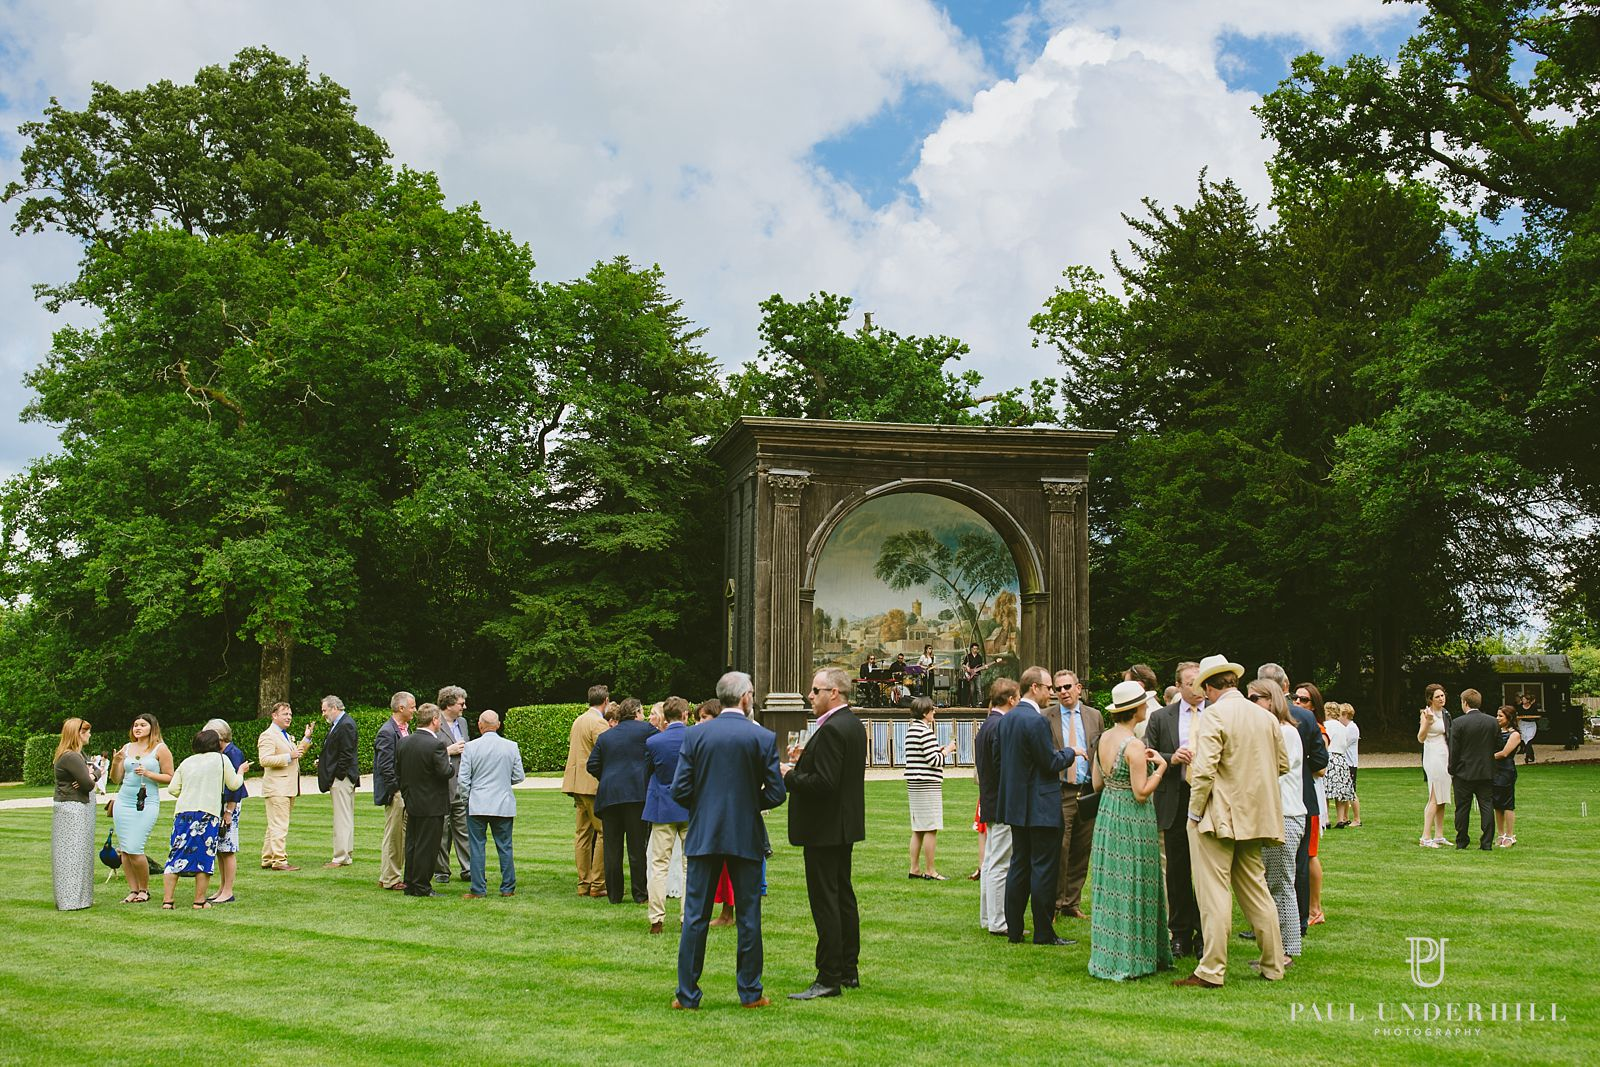 Outdoor wedding venues in Wiltshire